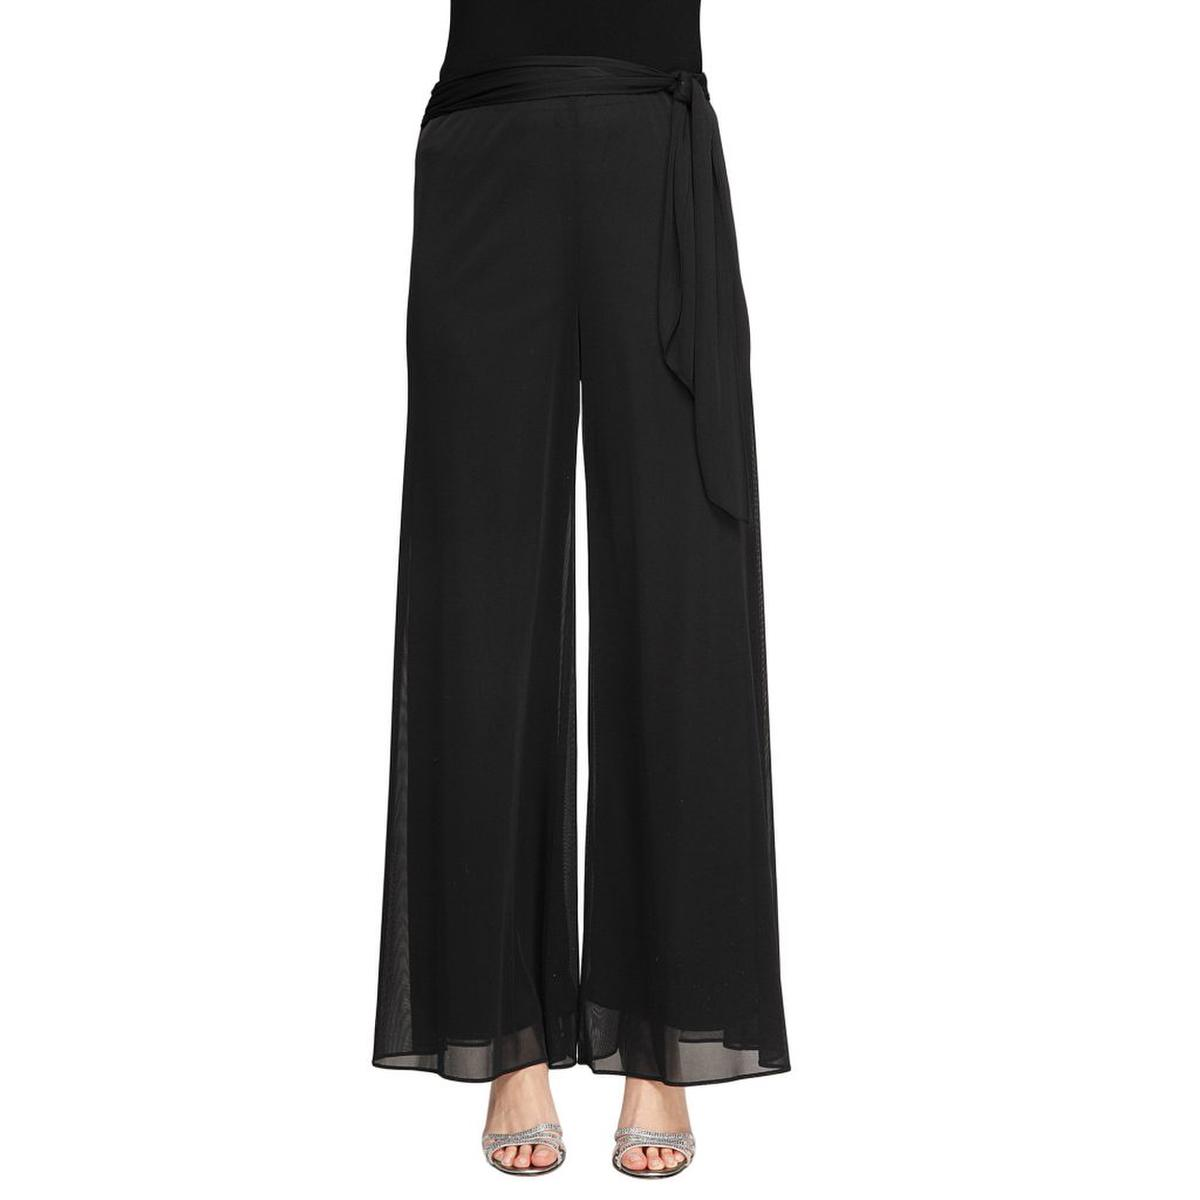 Wide Leg Mesh Pant With Tie Belt